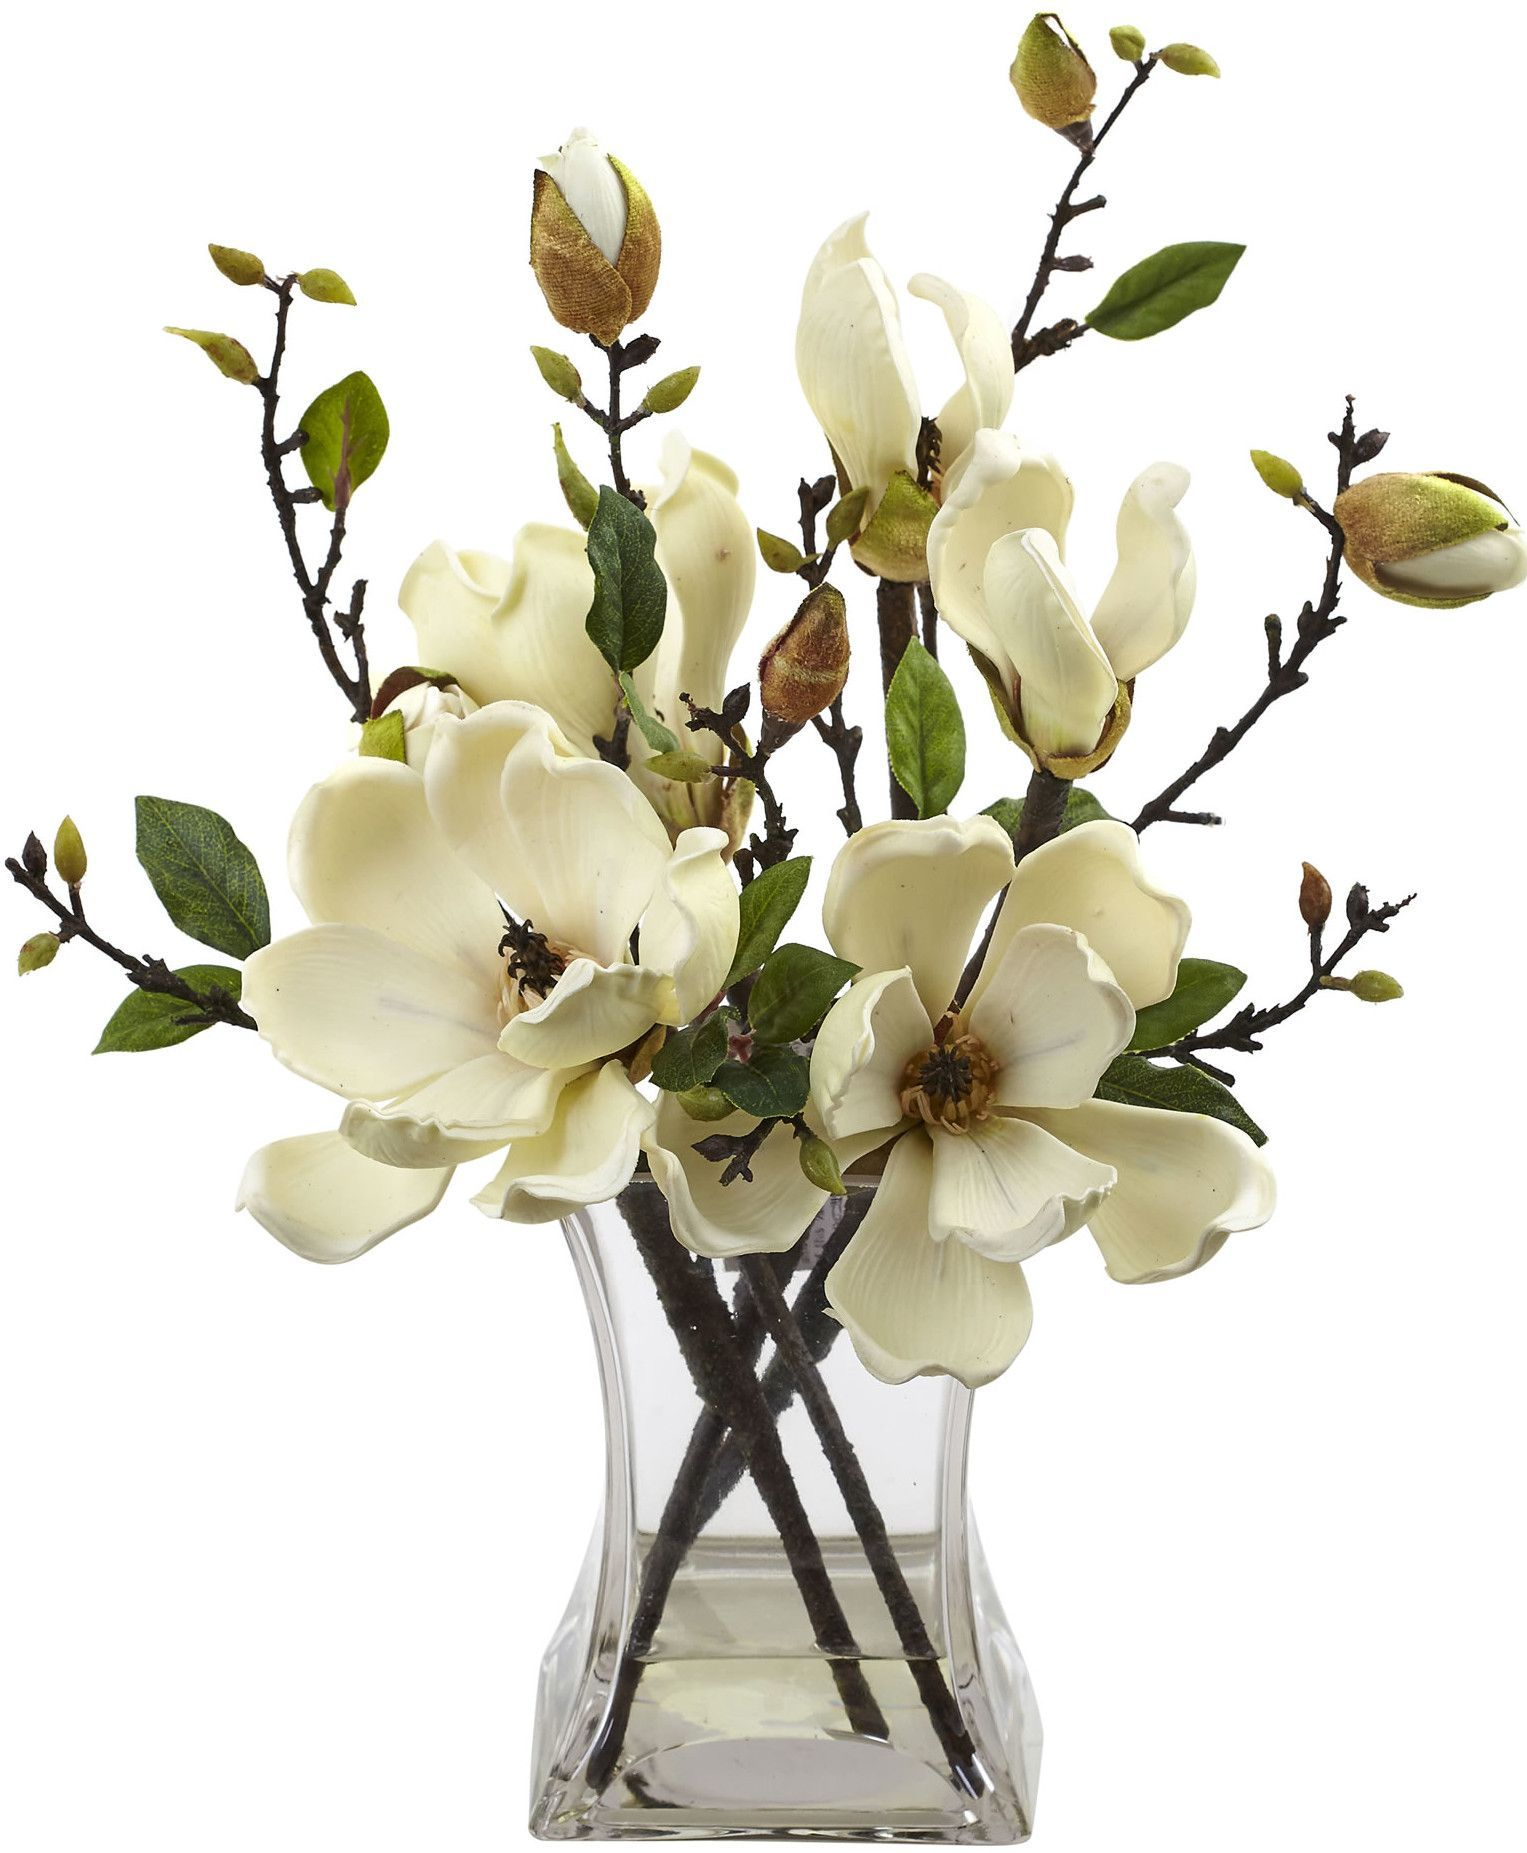 Magnolia Arrangement With Vase Magnolias Pinterest Flowers